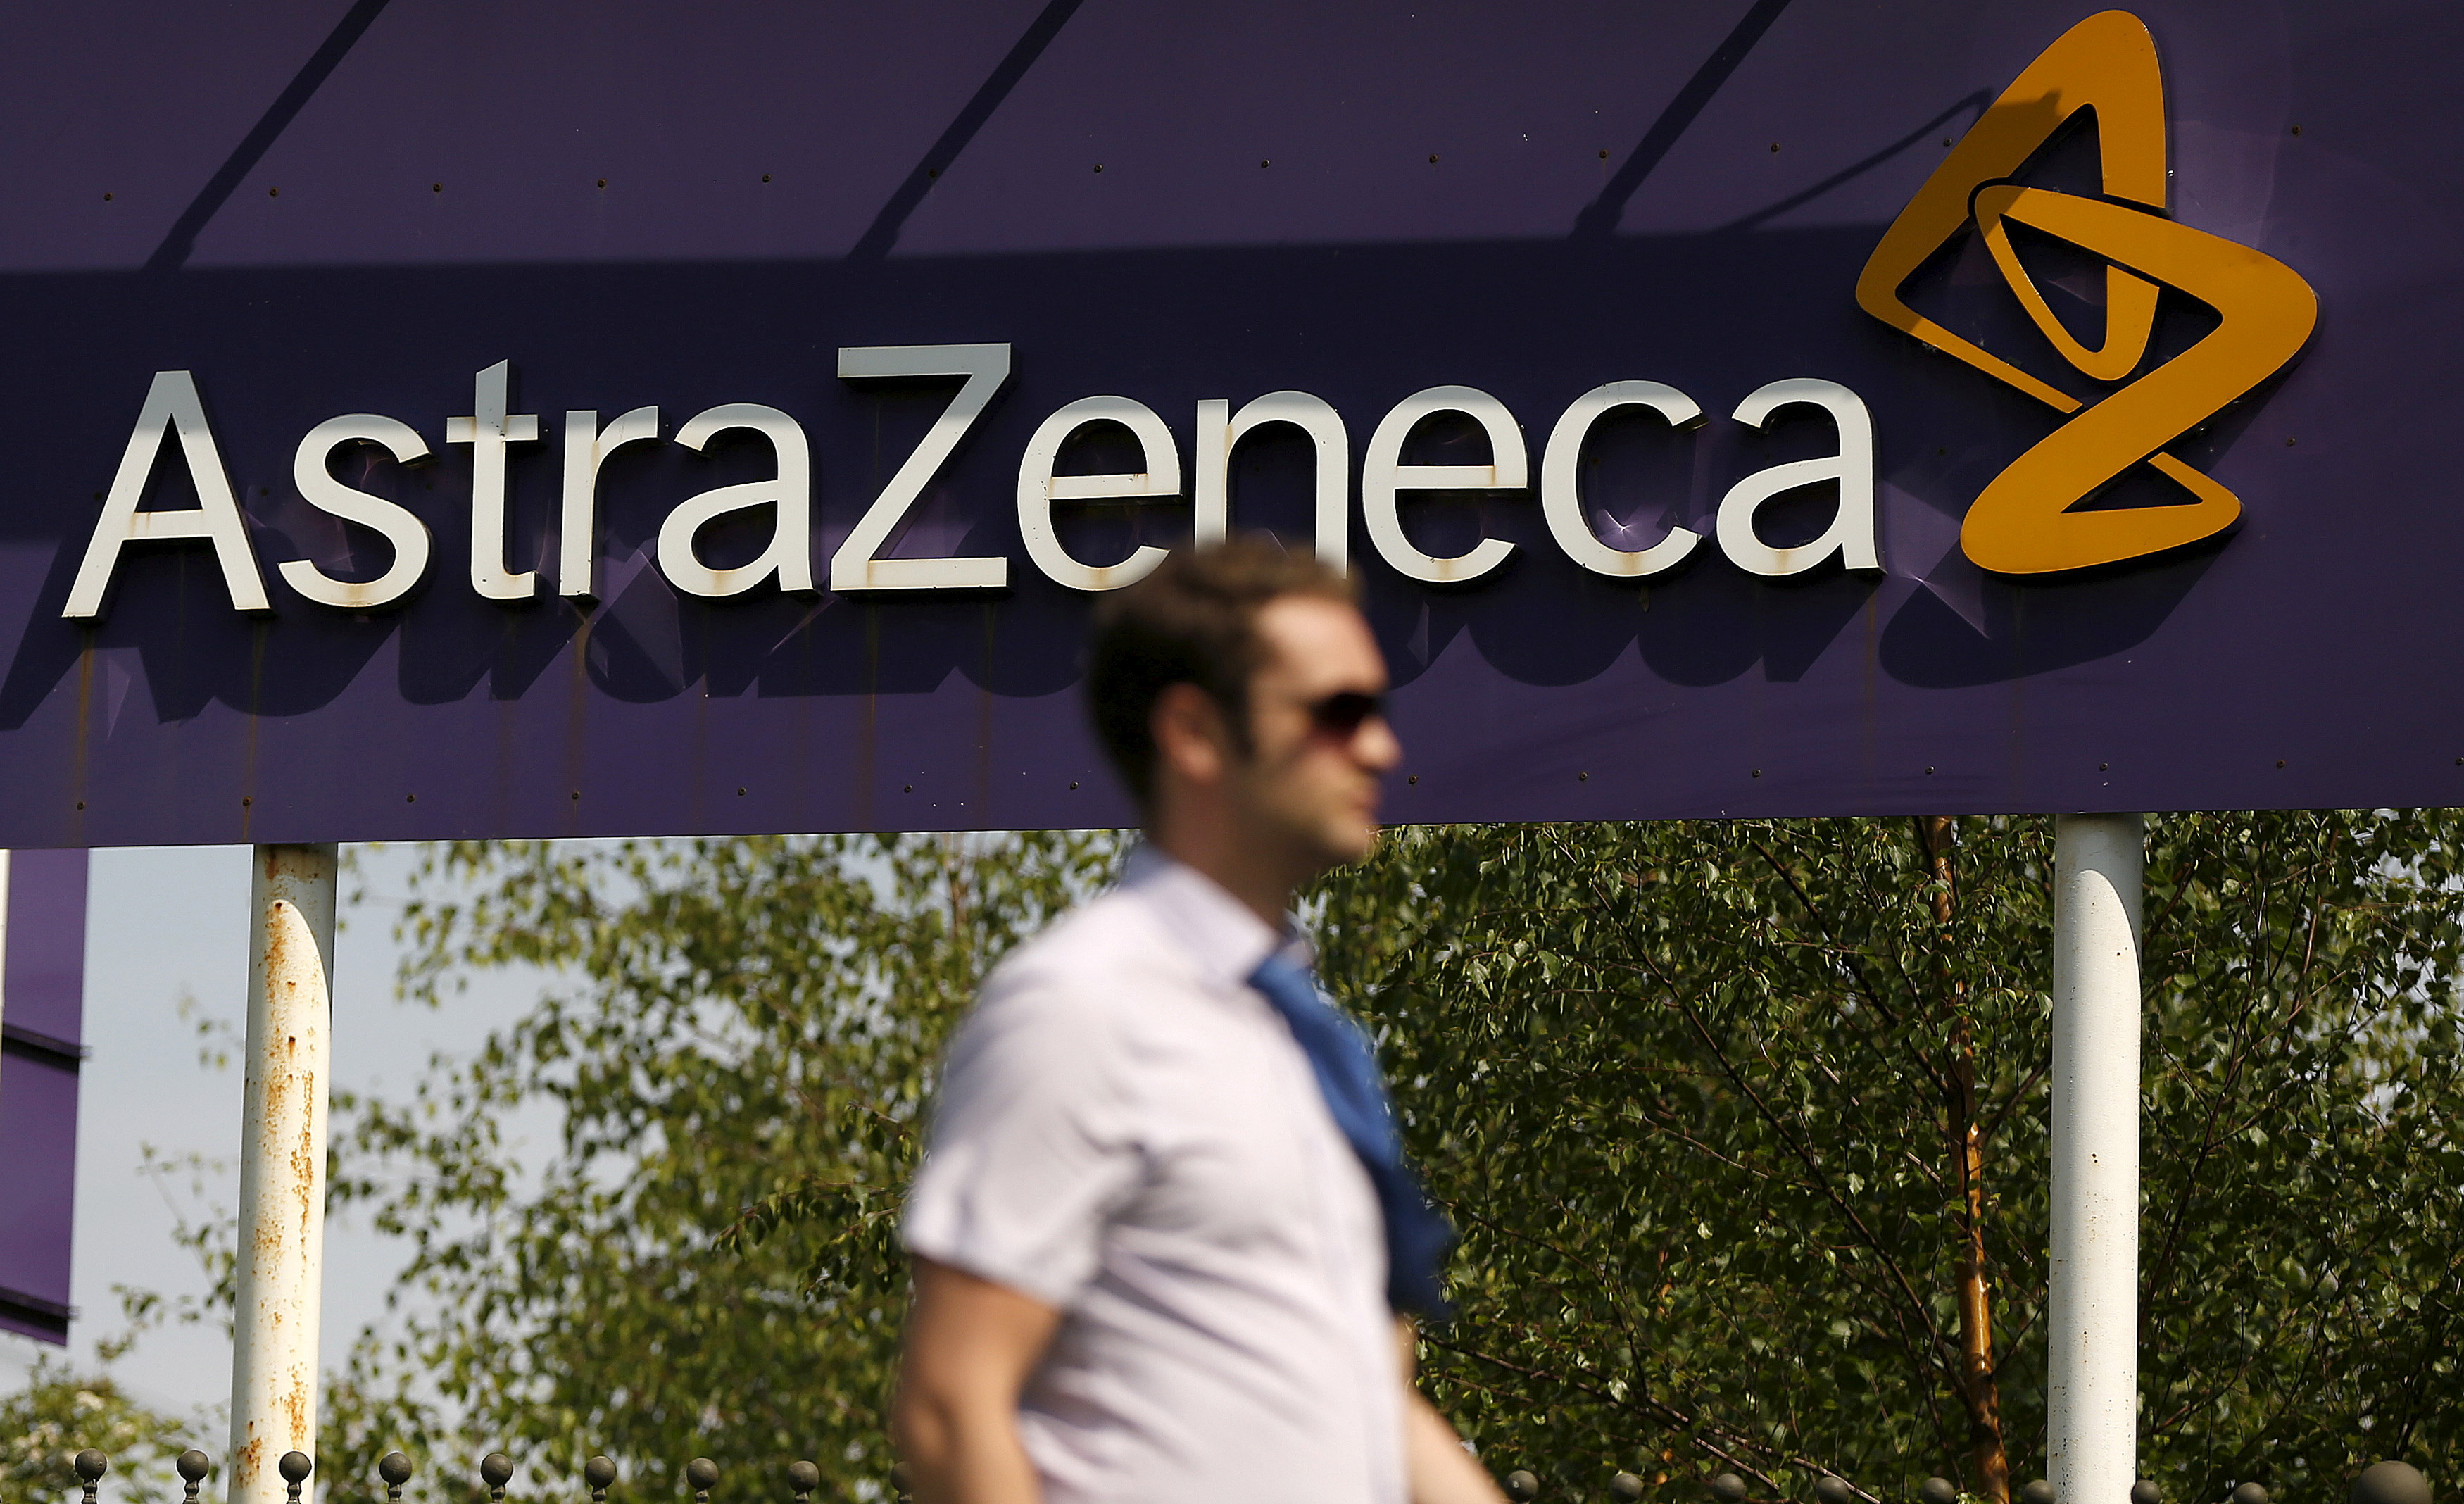 AstraZeneca partners with Oxford Biomedica to expand COVID-19 vaccine manufacturing capacity